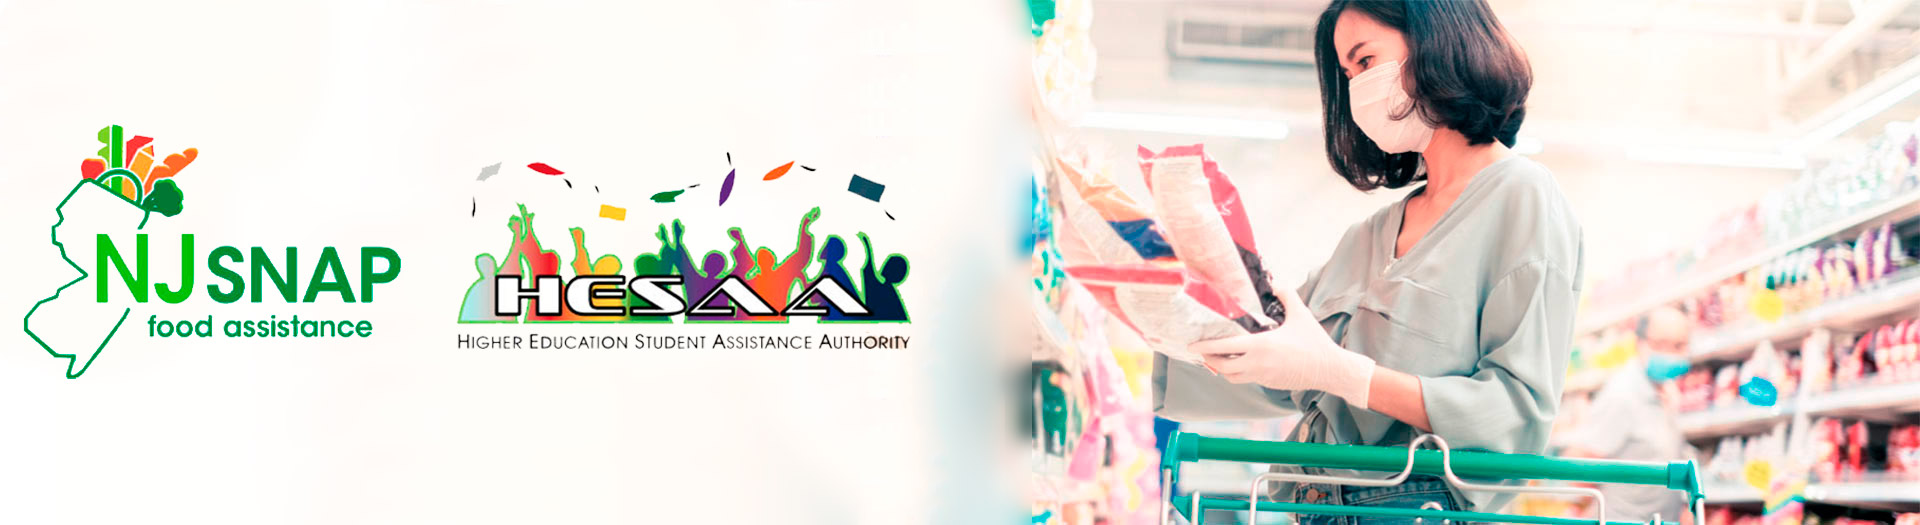 NJSNAP food assistance logo with the Higher education student assistance authority logo